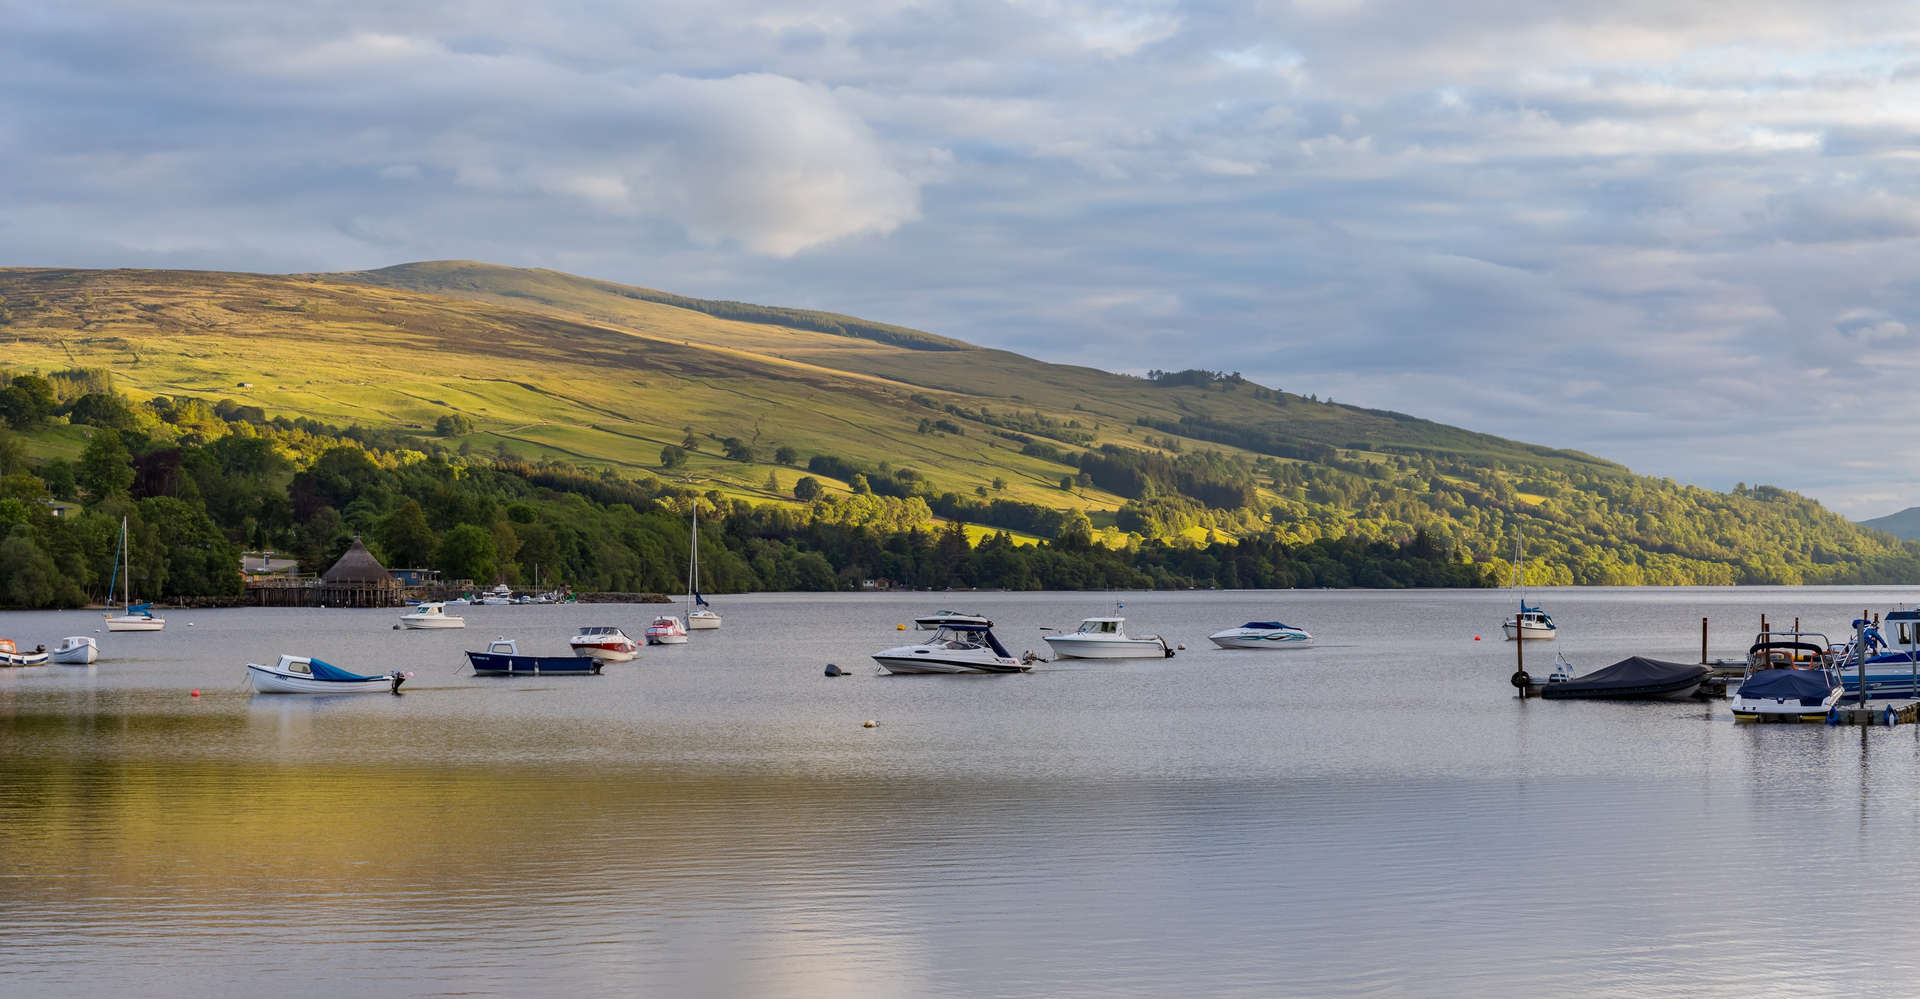 Loch Tay from Kenmore scotland with calm water and mountains and sky